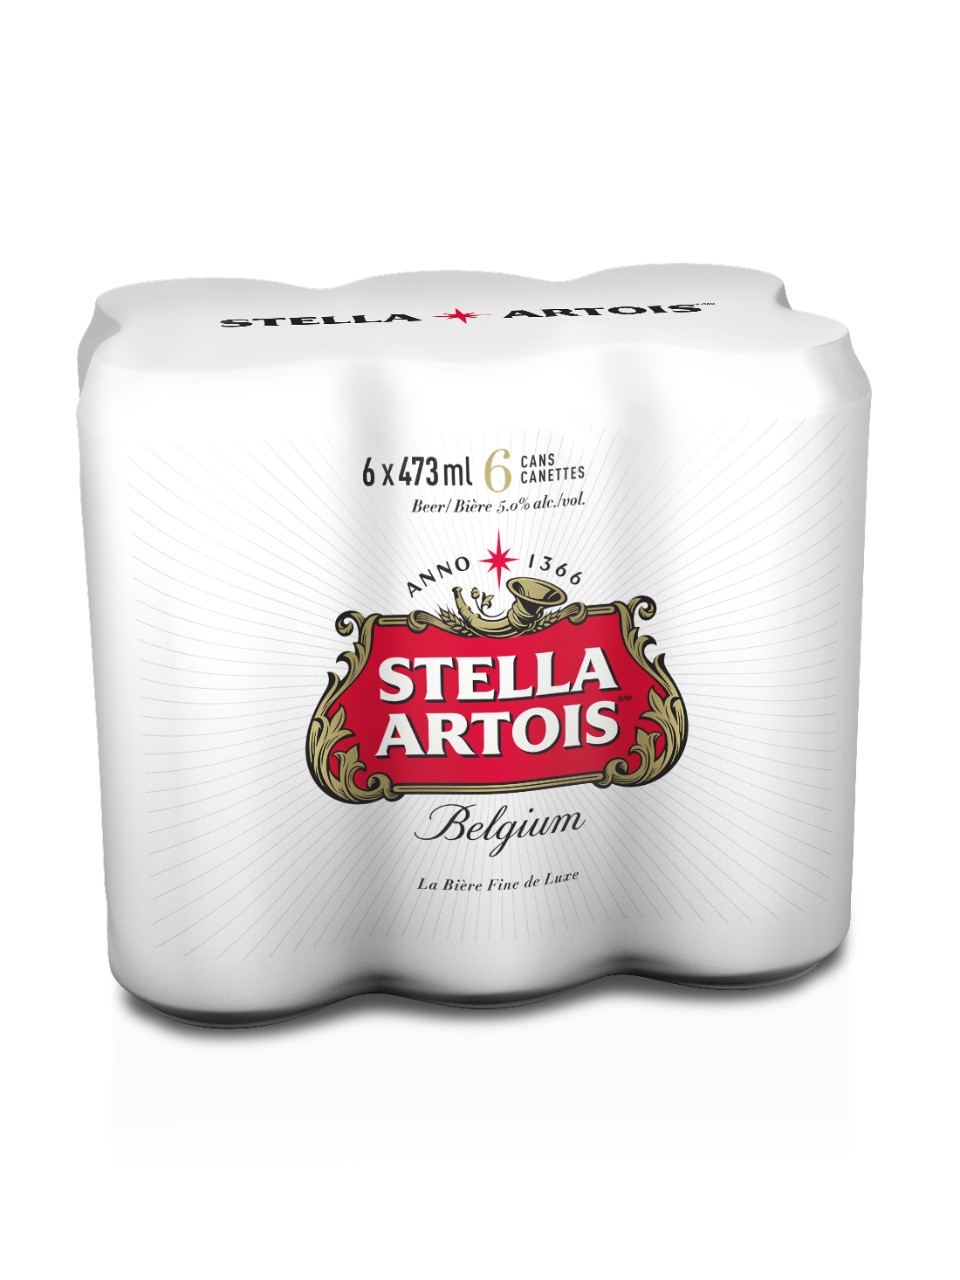 Stella Artois from LCBO